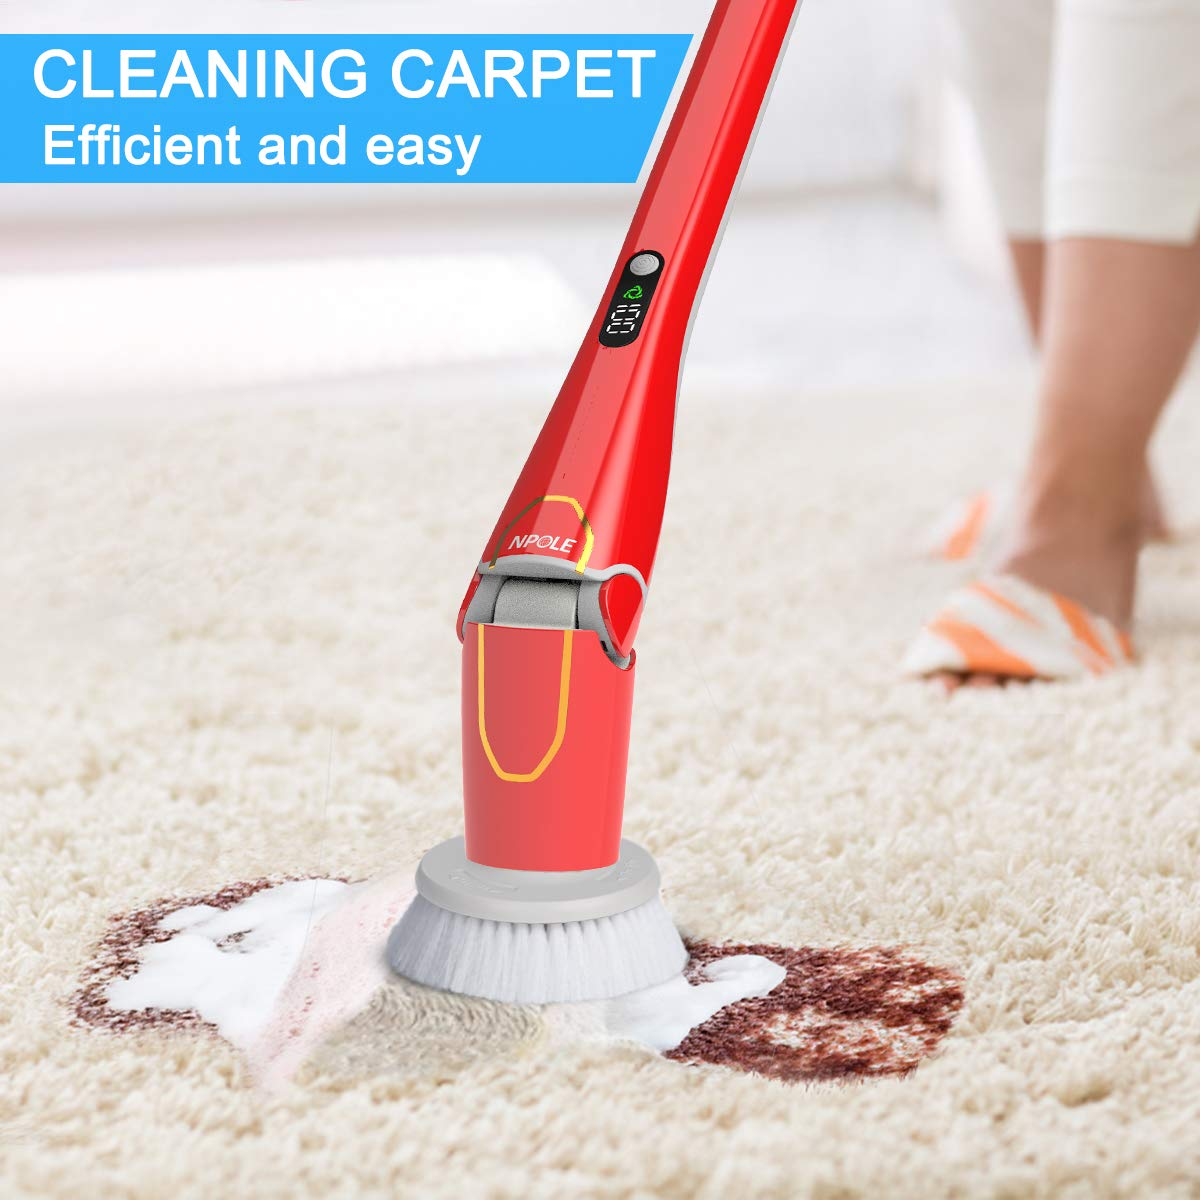 NPOLE Spin Scrubber IPX 7 Waterproof High Speed at 280r/m Power Cordless Spin Mop for Bathroom,Car,Kitchen,Floor,Wall,Tub Cleaner (Spin Scrubber)-RED by NPOLE (Image #2)